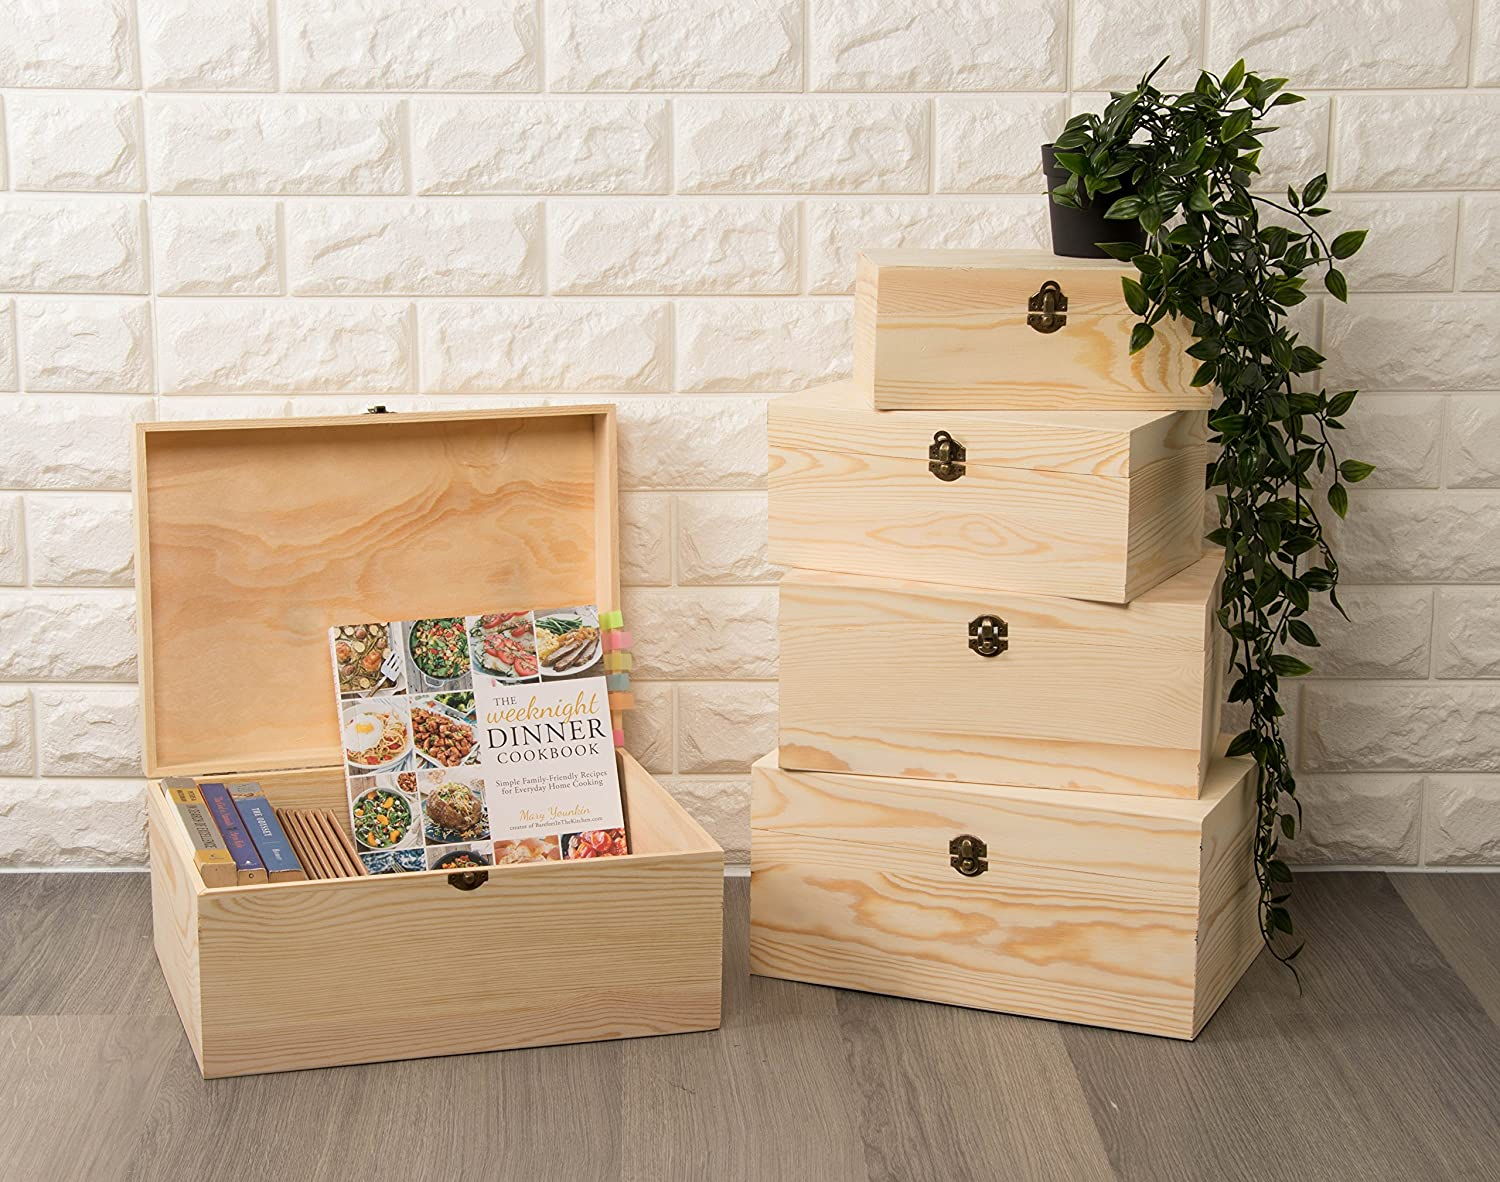 Juvale Wooden Boxes Crafts 5-Piece Hinged-Lid Nesting Boxes for Arts Unfinished Wood Natural Wood Color Hobbies and Home Storage